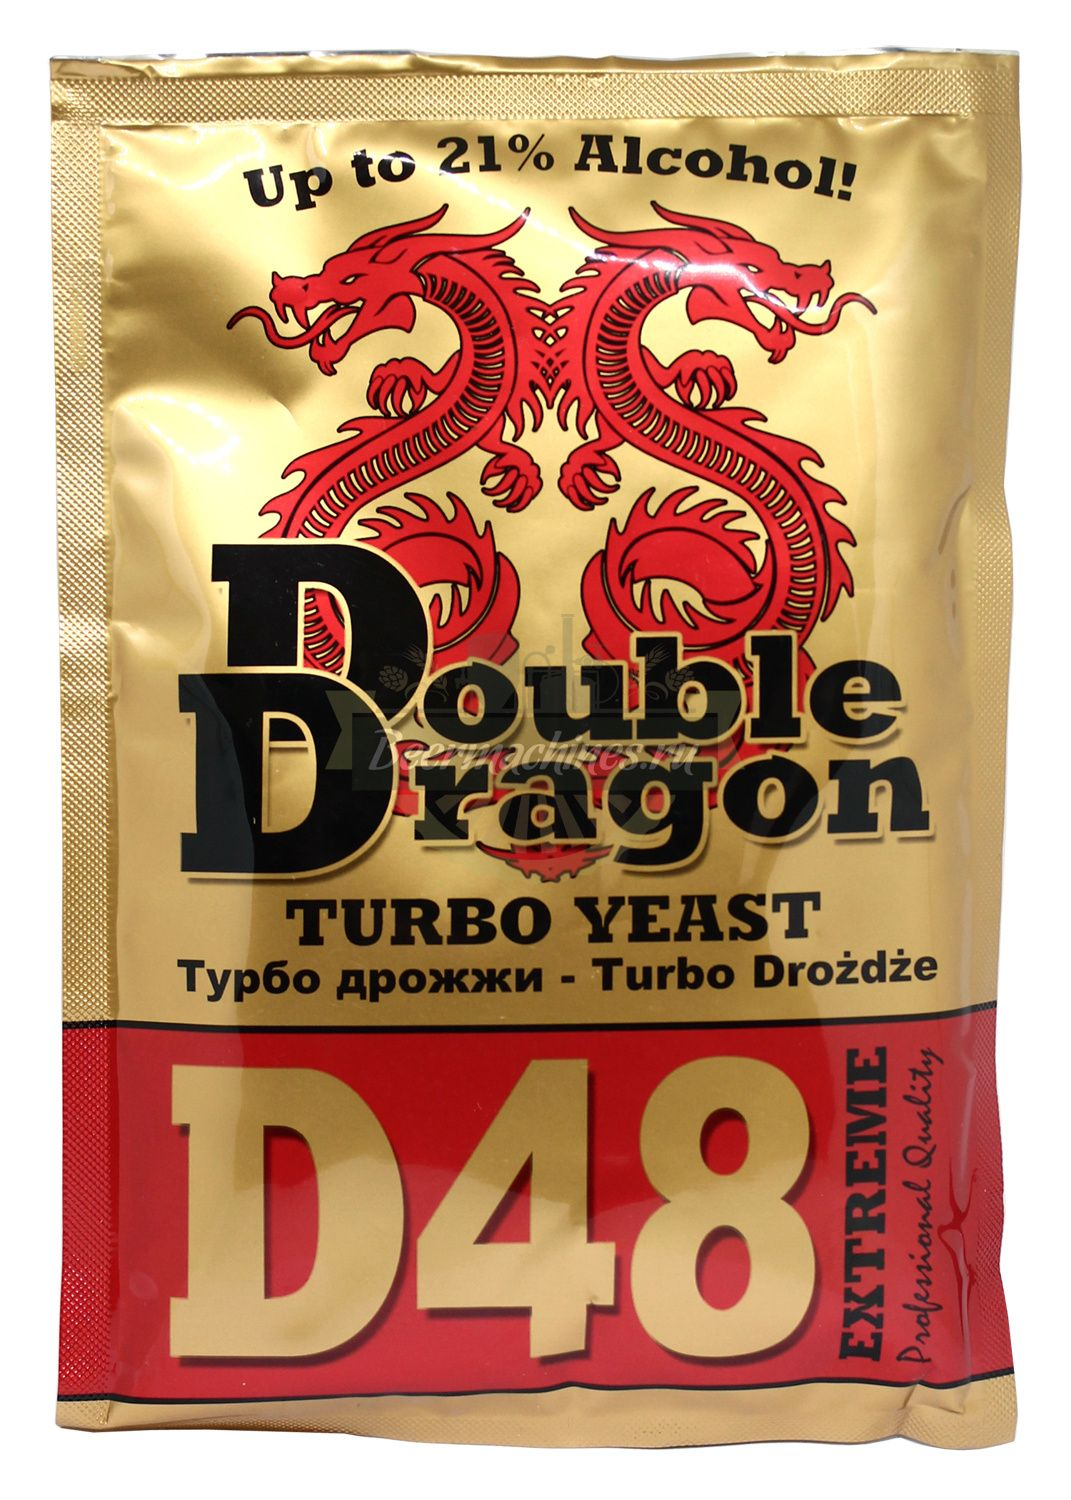 Turbo Yeast DoubleDragon D48, 132g